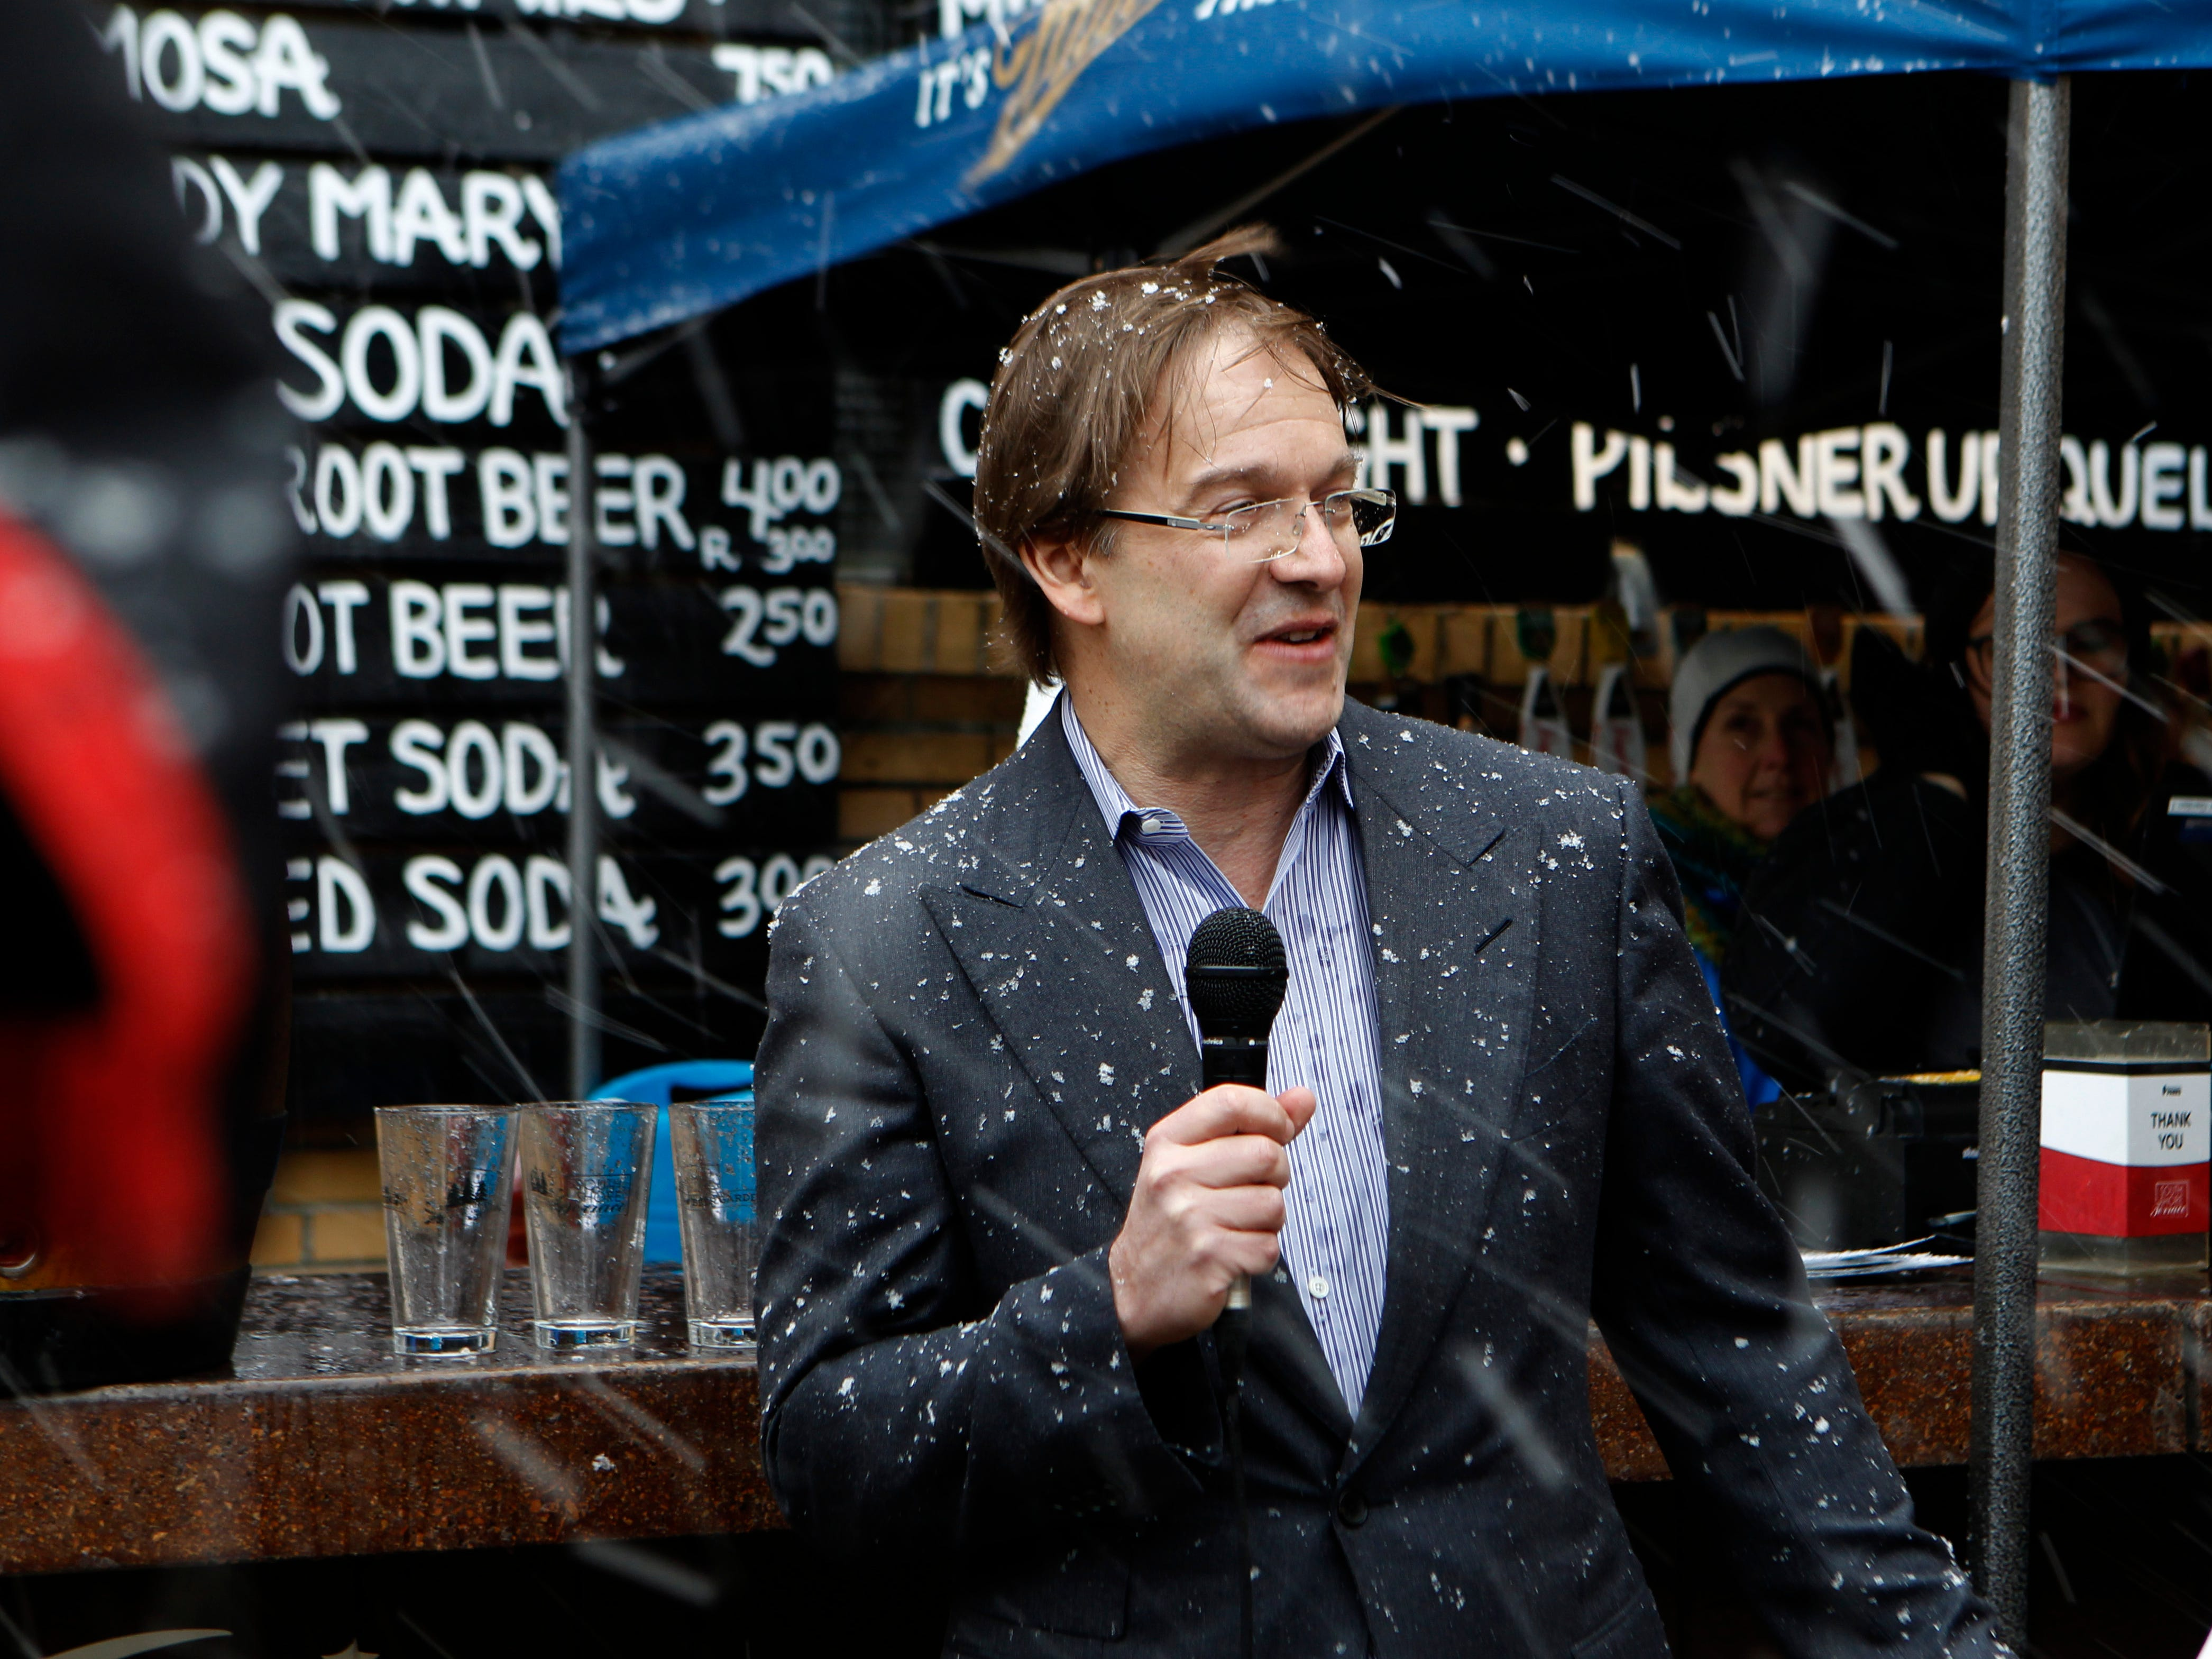 Milwaukee County Executive Chris Abele speaks before the free beer tap opens at  South Shore Terrace.